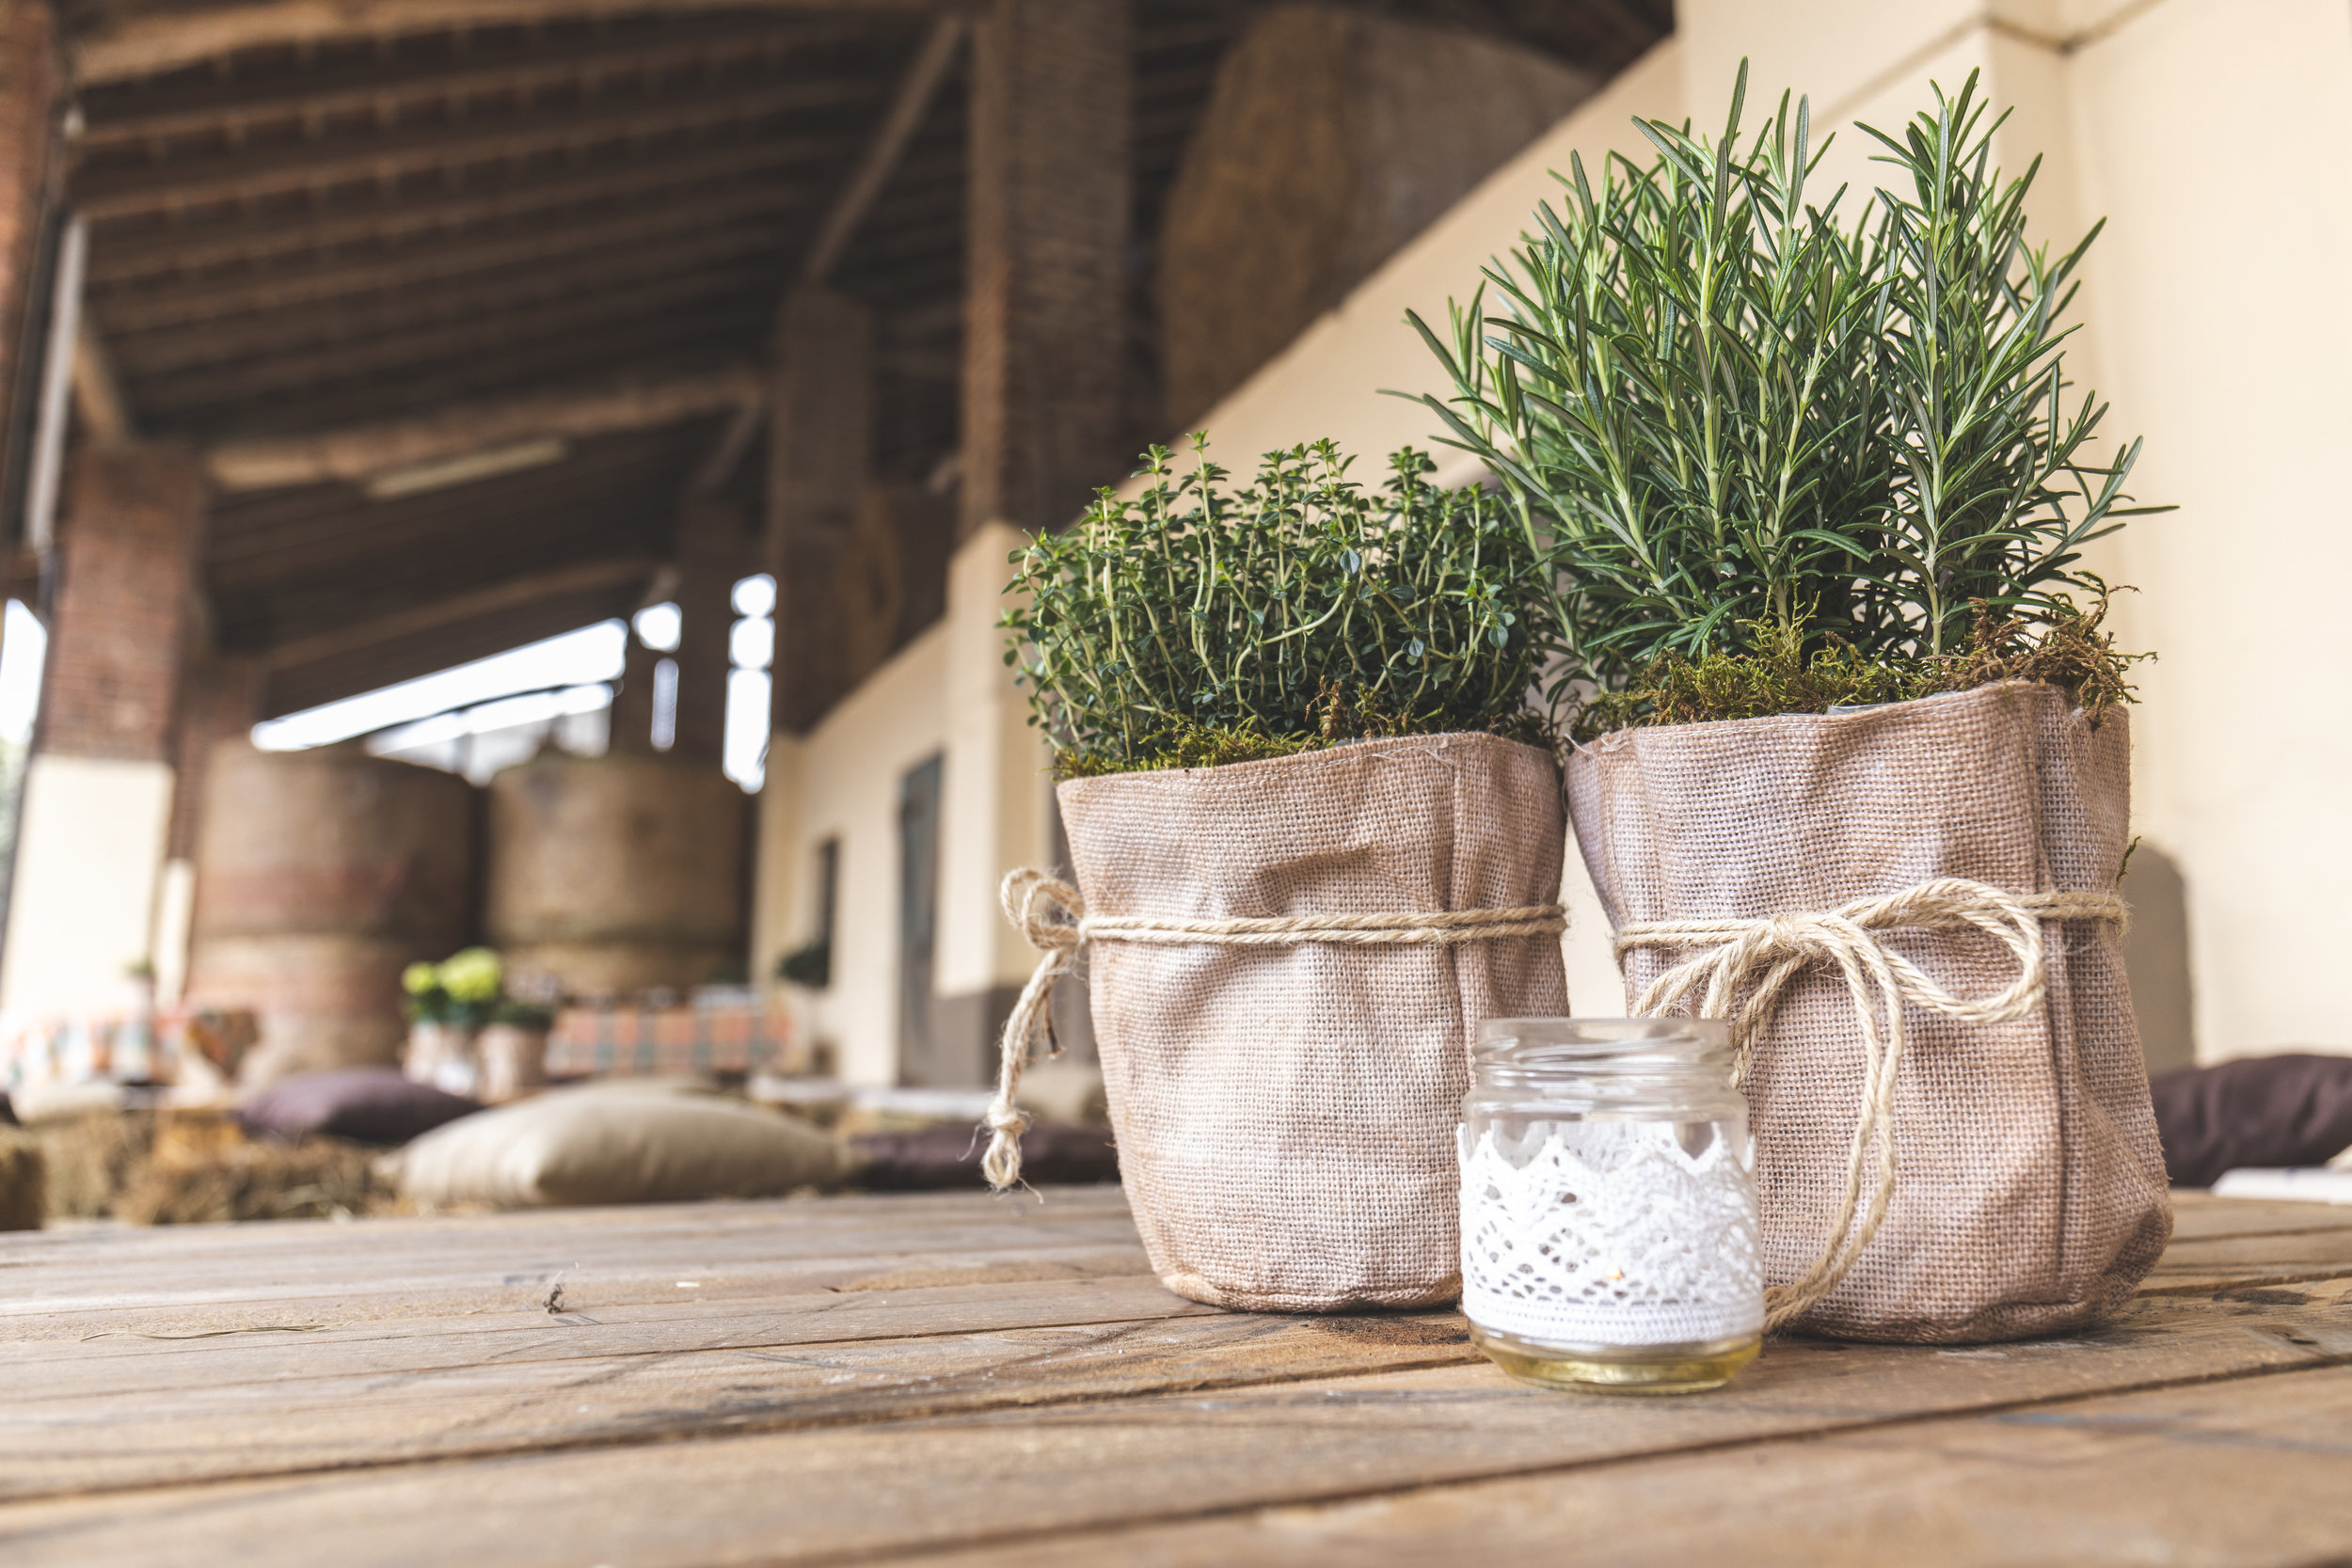 Gardenalia Tip: - As with all container gardens or potted plants, it's imperative to keep your eyes open for drainage holes. Those impressive containers on your local store's shelves might lack adequate drainage, ultimately causing damage to root systems. Below are a few container gardens that we've designed (proper drainage and all)!Rosemary is a great plant to have in the kitchen on a window sill for a quick evening snip, and as it's Mediterranean in origin, it will need the sun and preferably southern window exposure. Also, keep in mind, over-watering this plant can damage the base of the roots, so let it dry thoroughly. And lastly, Rosemary is super simple to propagate, and sometimes roots will develop even in a glass of water on a sunny windowsill, so snip a bit off, and give one to a friend who loves to cook, they'll thank you for it!